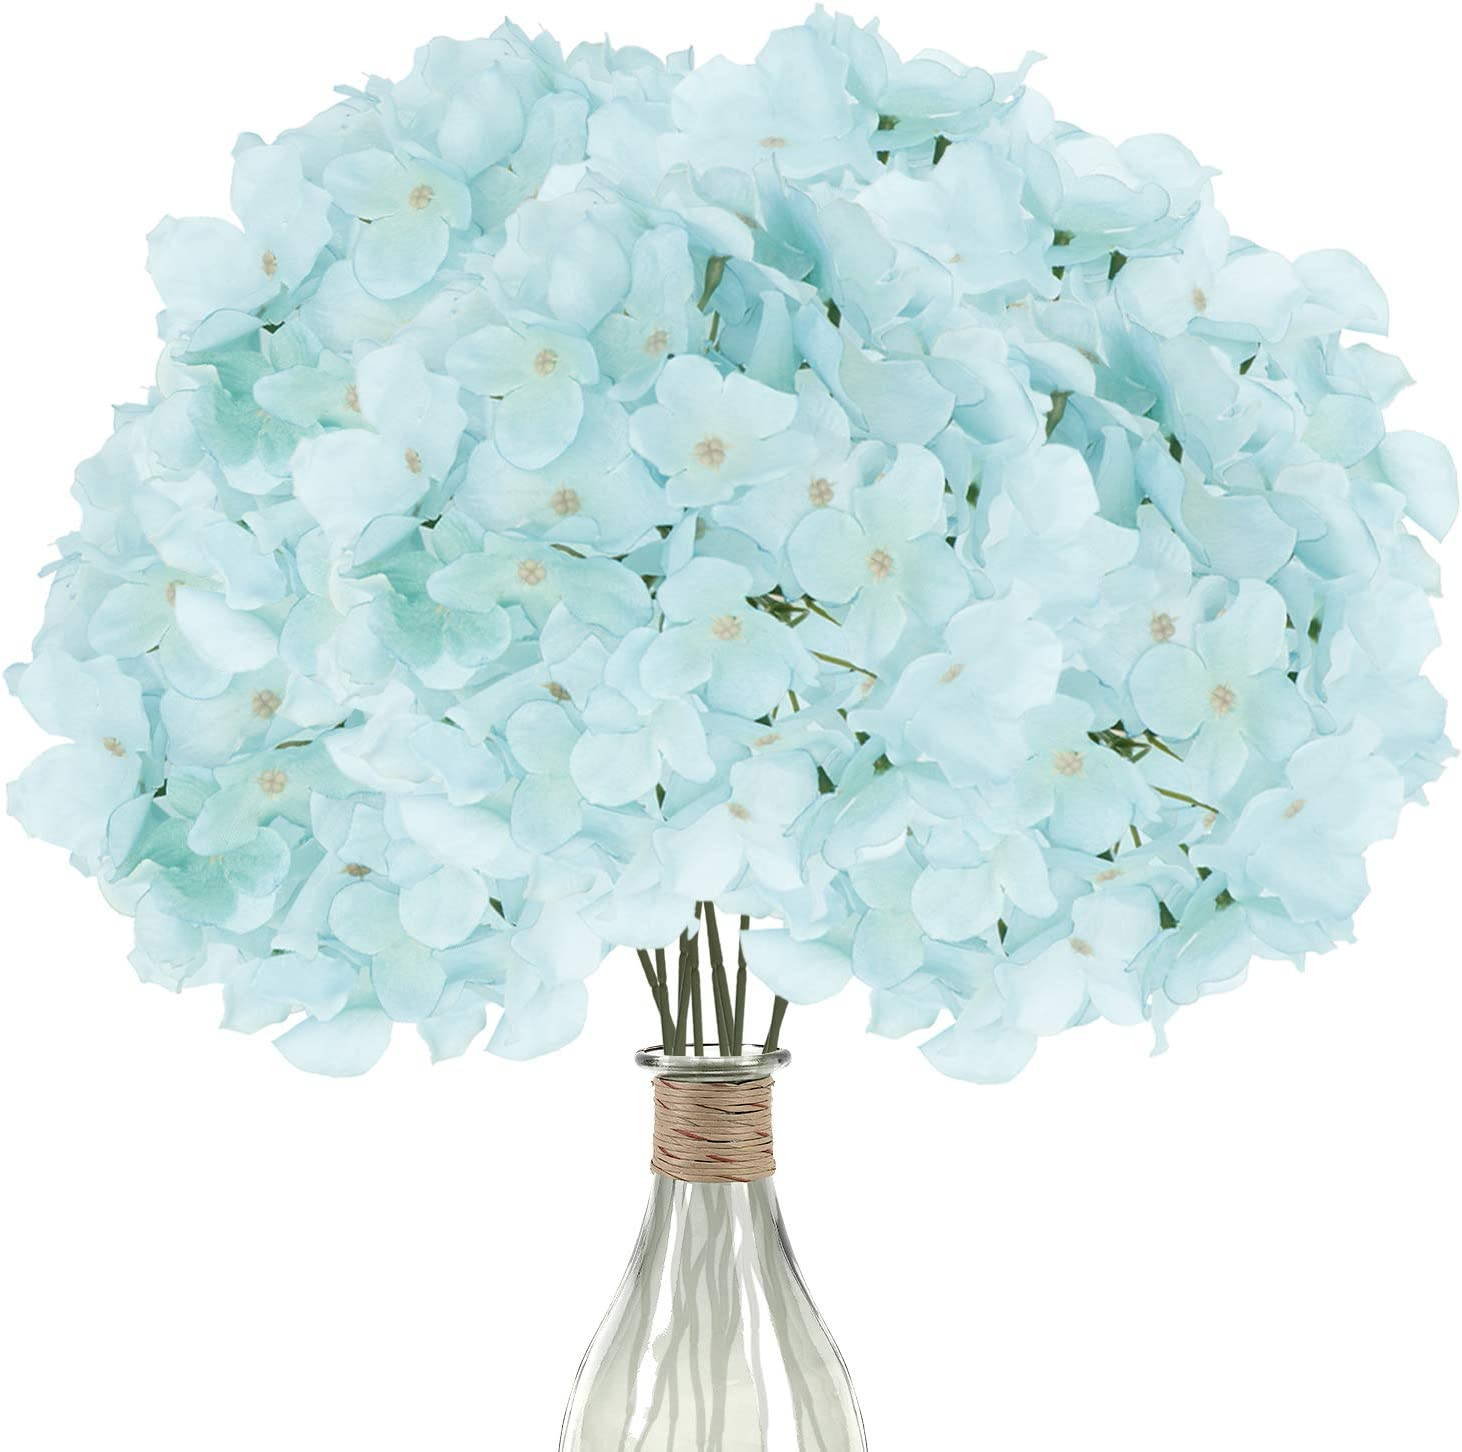 Elfii 10 Pack Silk Hydrangea Heads Artificial Flowers Heads with Stems for Home Wedding Party Decor Bride Holding Flowers Bouquet Baby Shower Decoration Centerpiece DIY Wreath Craft - Robin's egg blue